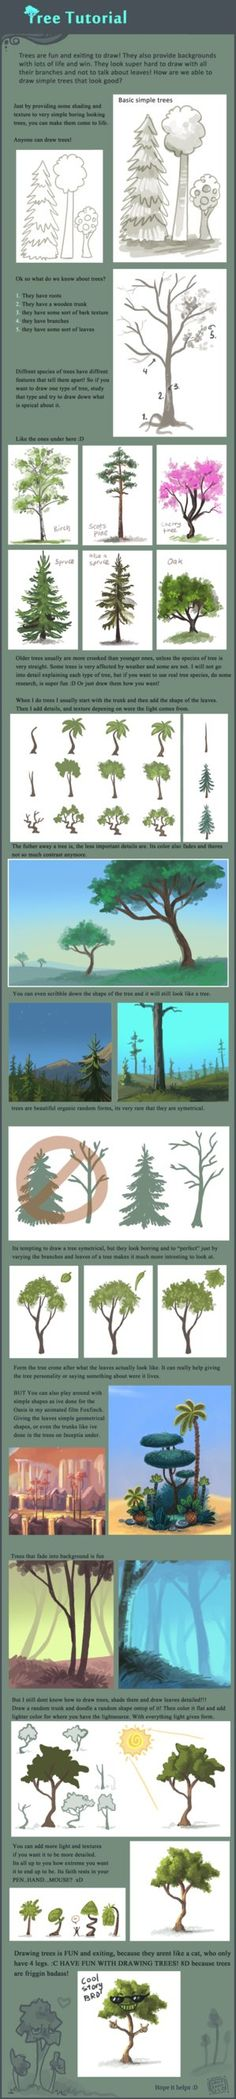 Ignore typos. Here is the promised Tree tutorial Hope it helps! It was lots of fun to do haha xD This is how I do trees, you can also sketch the form before coloring it like Ive done. but its easy ...